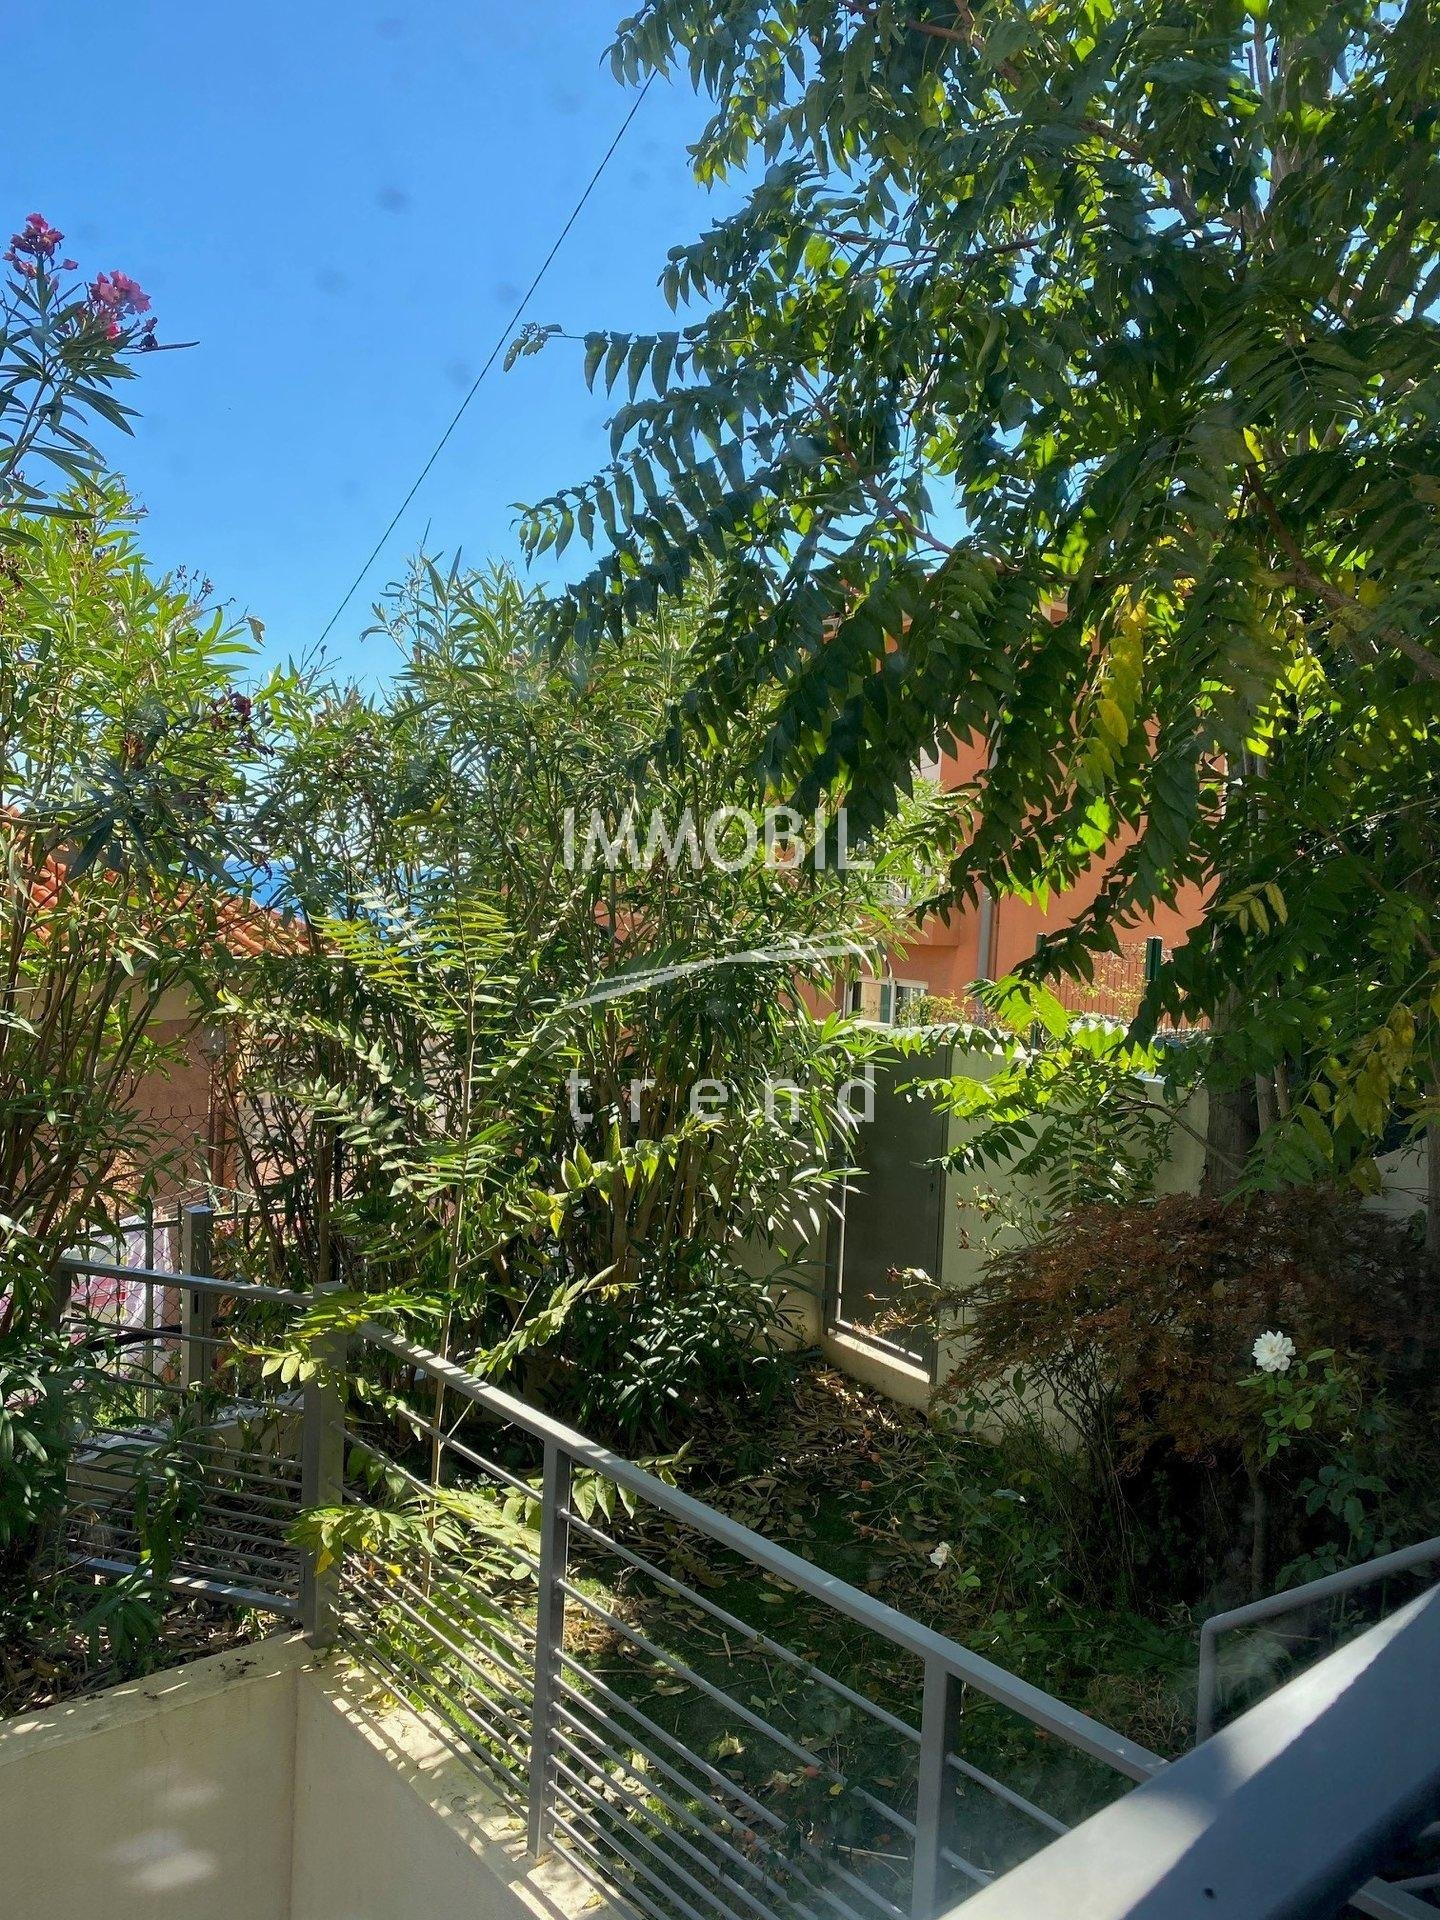 Real estate Beausoleil - For rental, close to Monaco, two bedroom apartment with garden and parking space